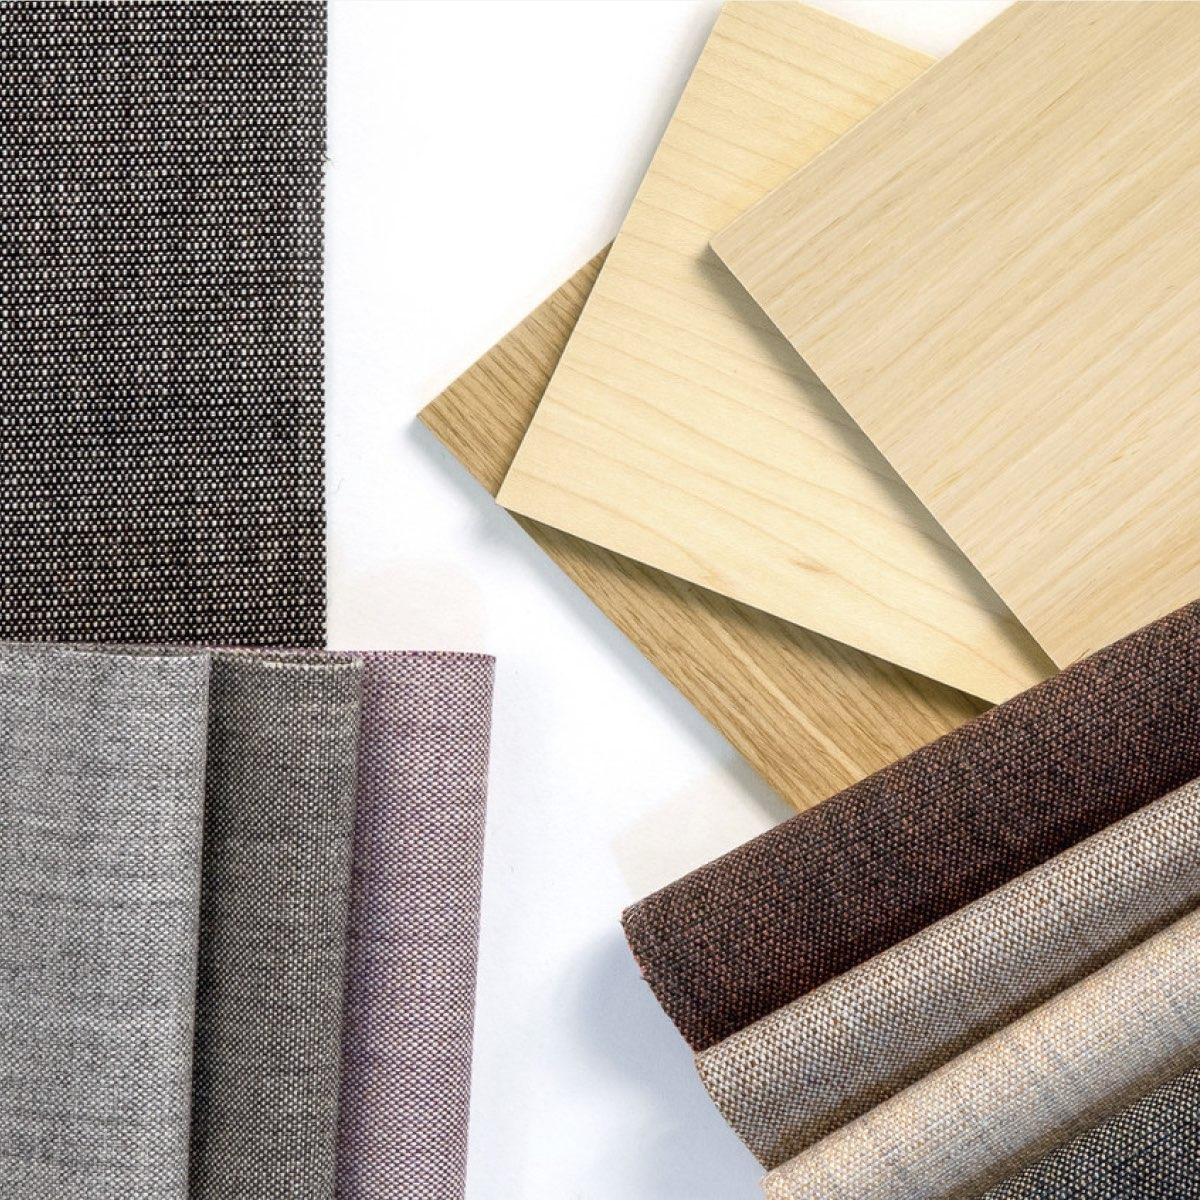 An overhead view of a variety of material samples including fabrics, and laminates in a range of colors.